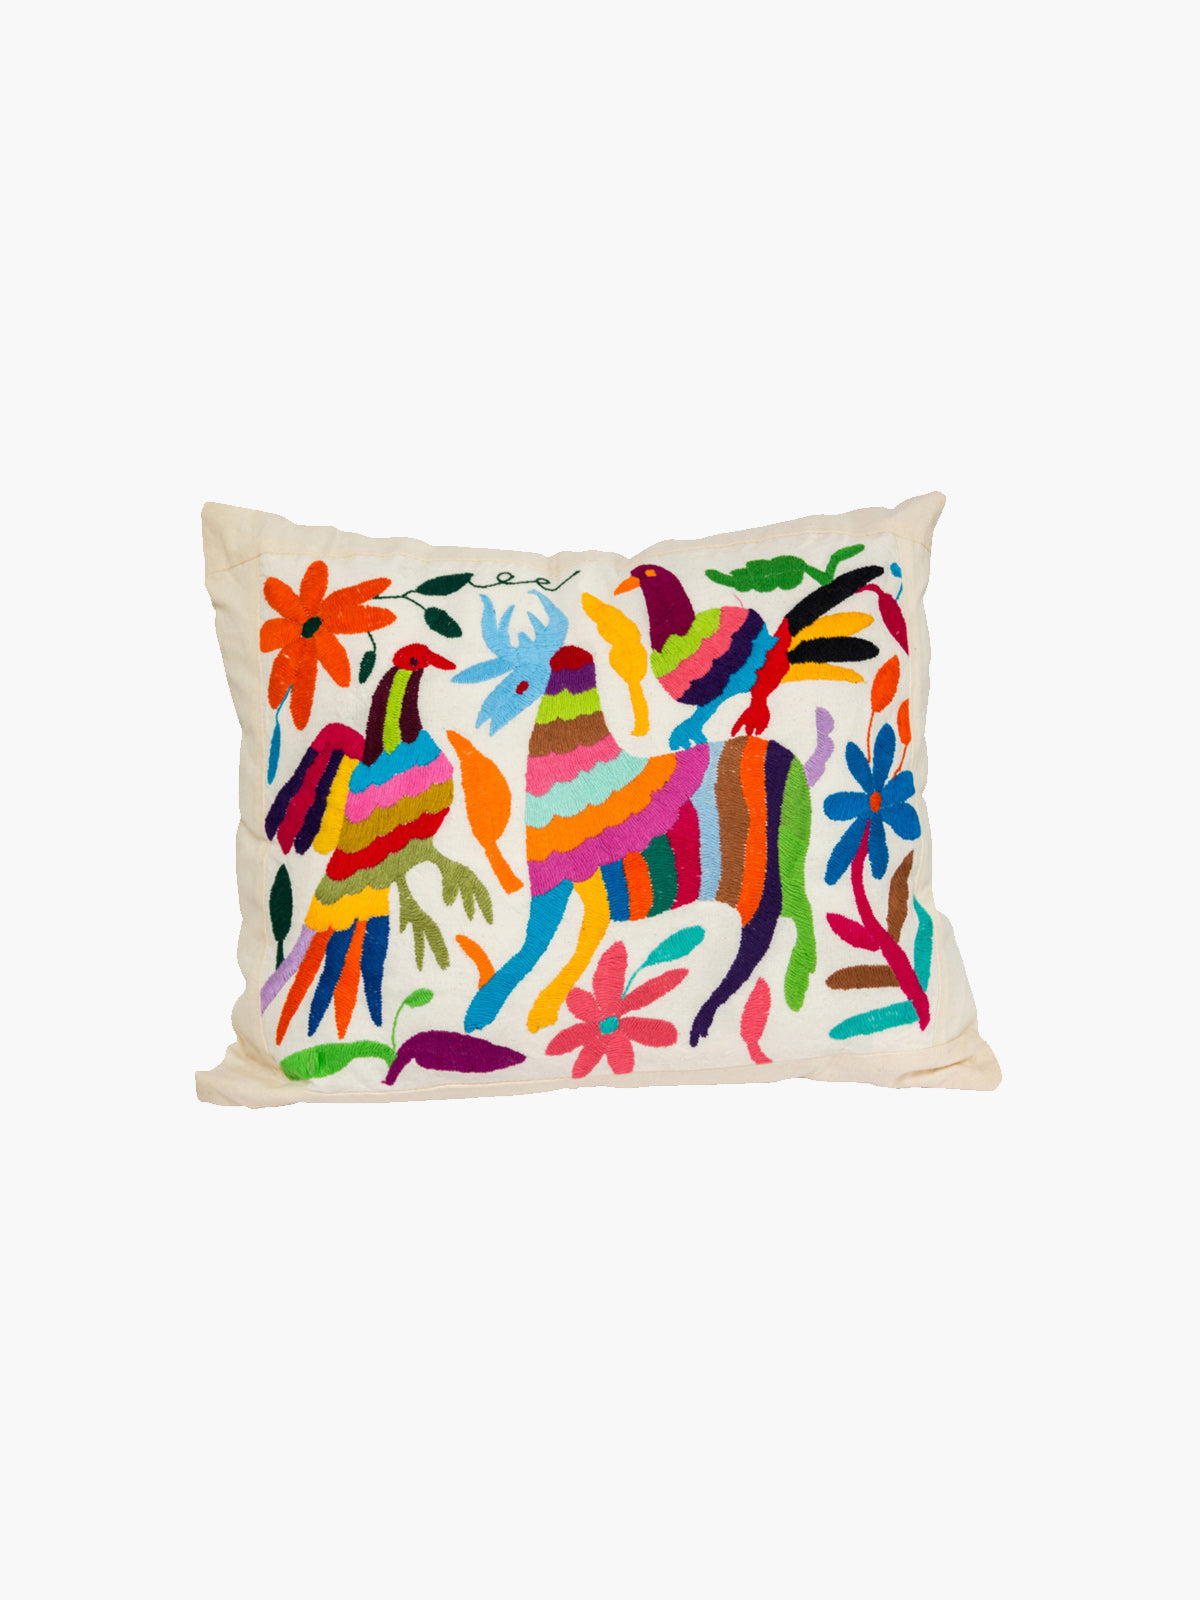 Hand-Embroidered Otomi Cushion | I